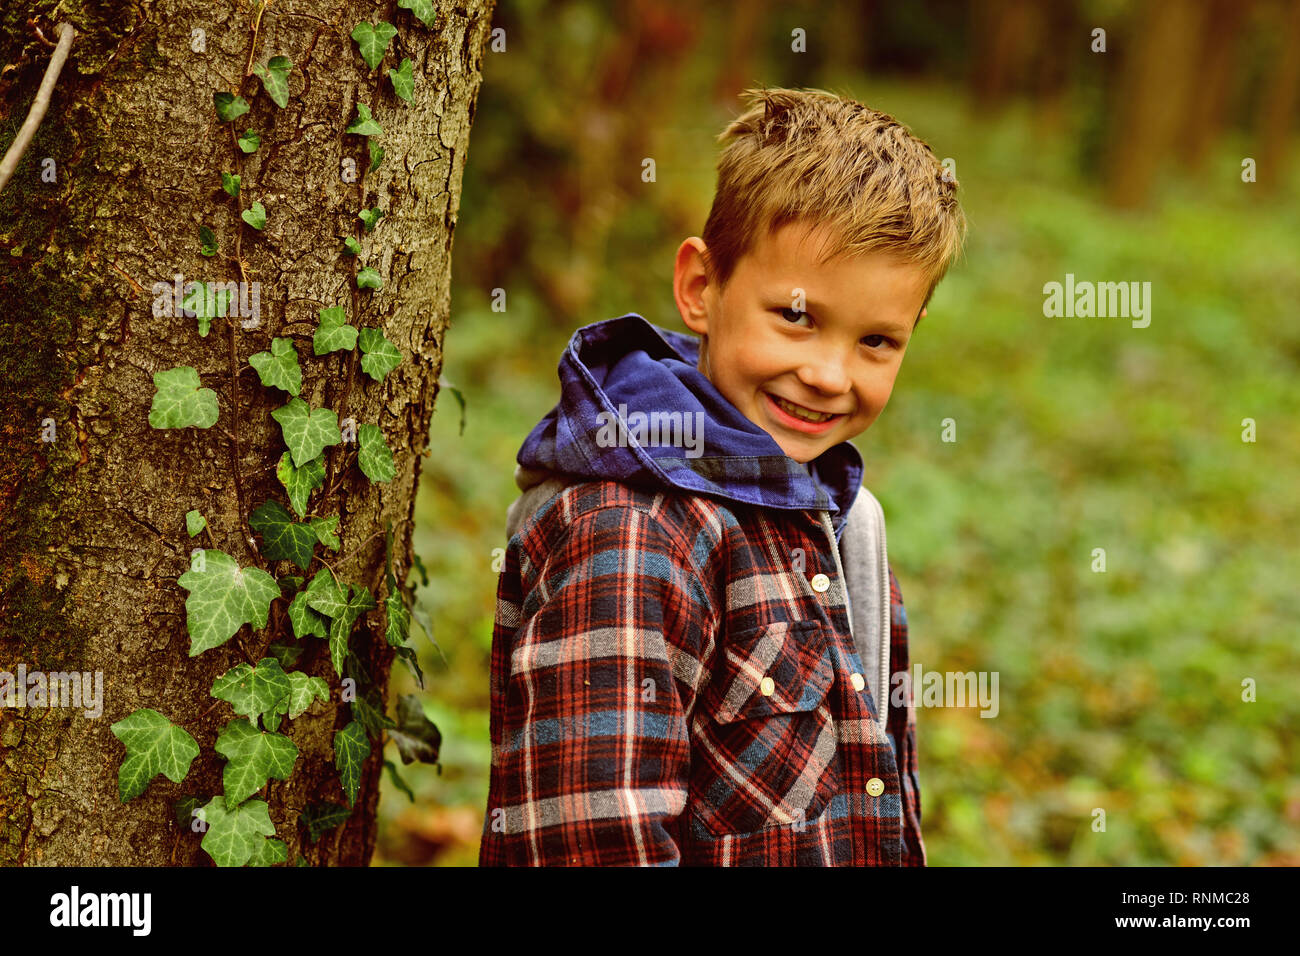 Small boy enjoy childrens day. Small boy play on autumn day. Protecting childrens rights. Every child matters - Stock Image